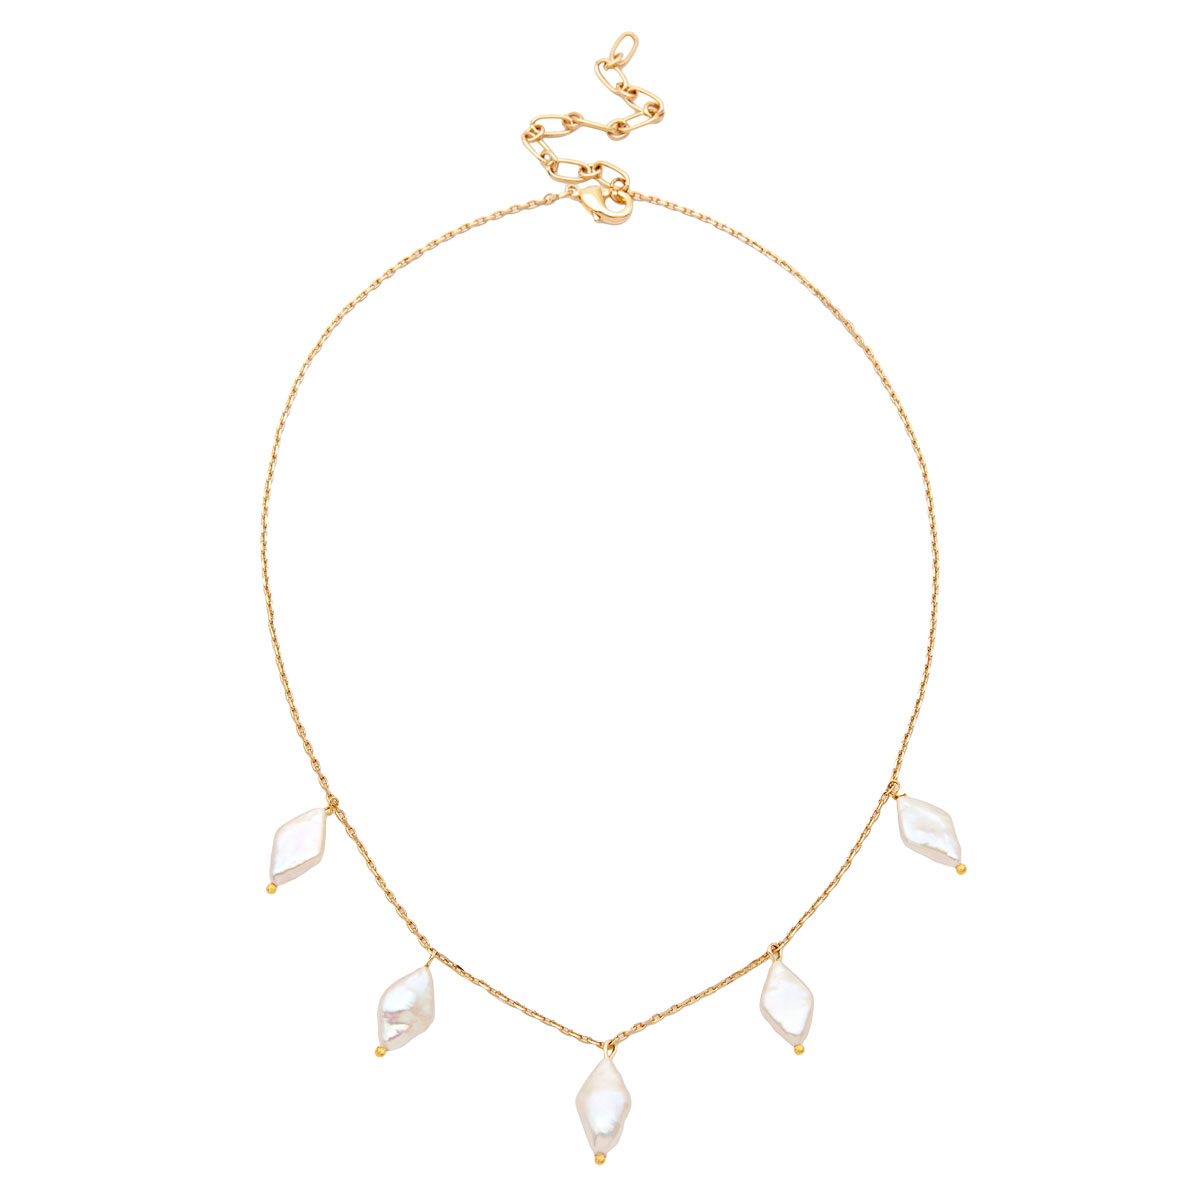 Amber Sceats Freshwater Pearl Malia Necklace